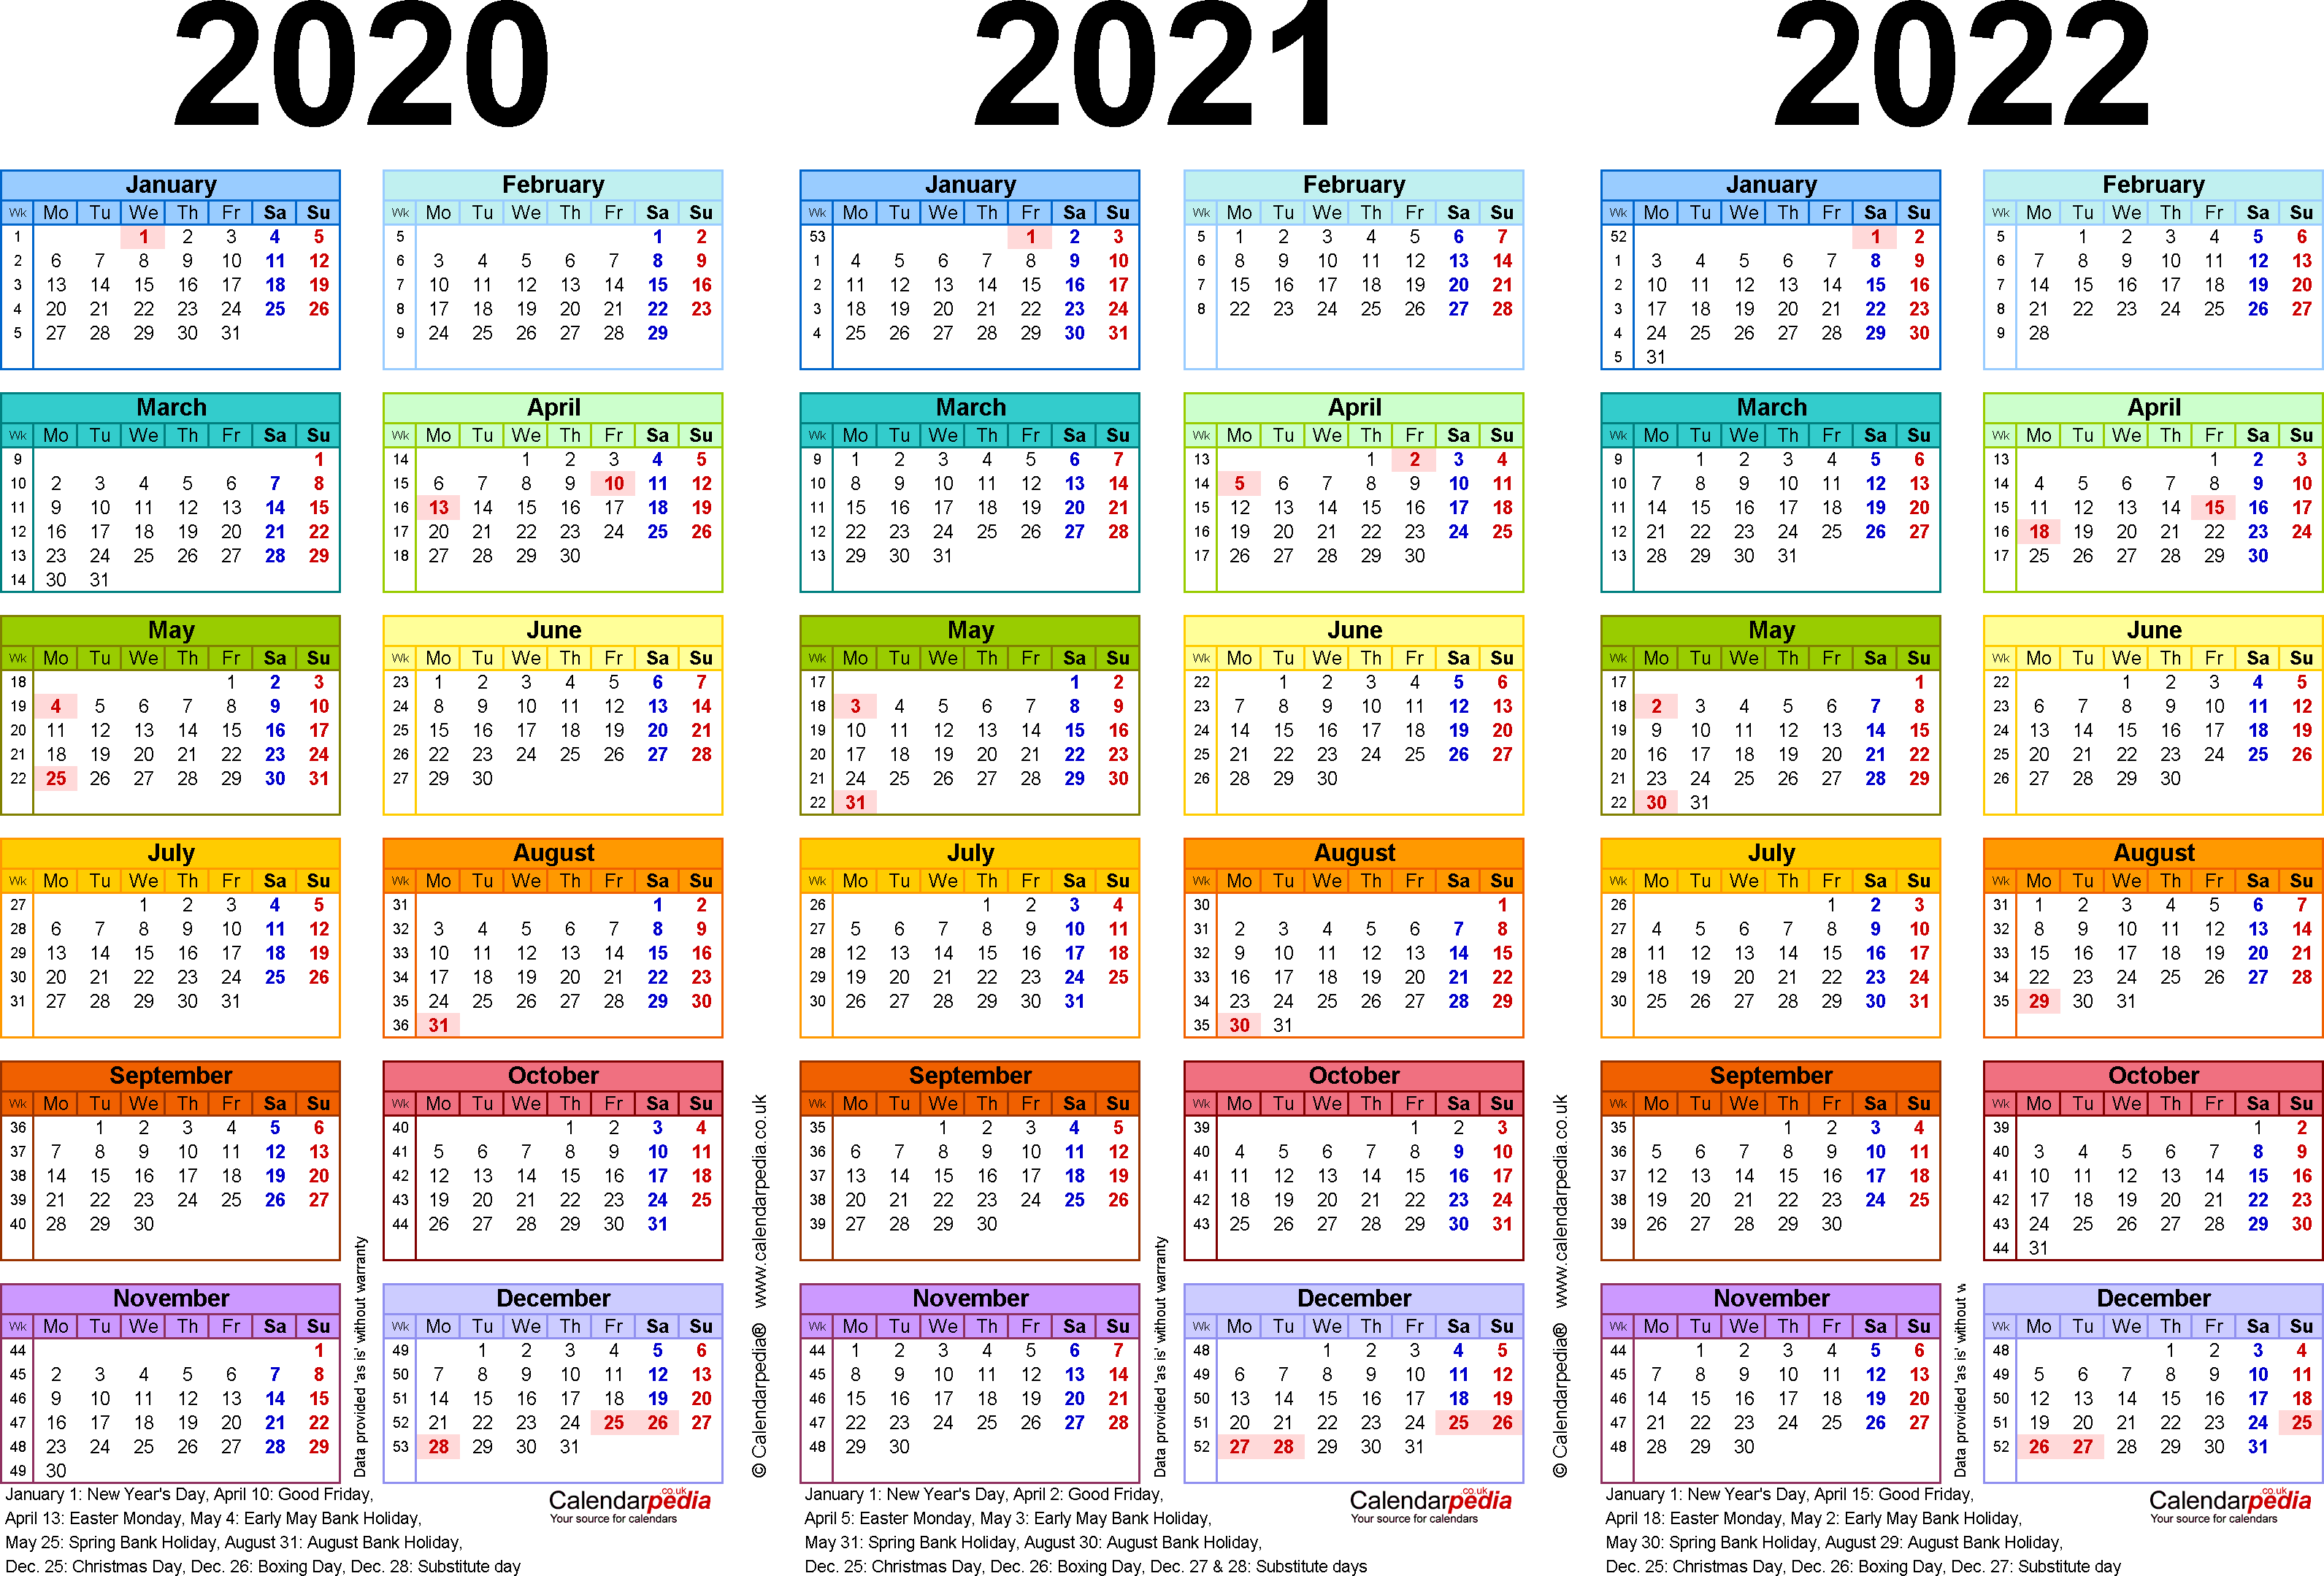 Template 1: Word template for three year calendar 2020-2022 in colour (landscape orientation, 1 page, A4)